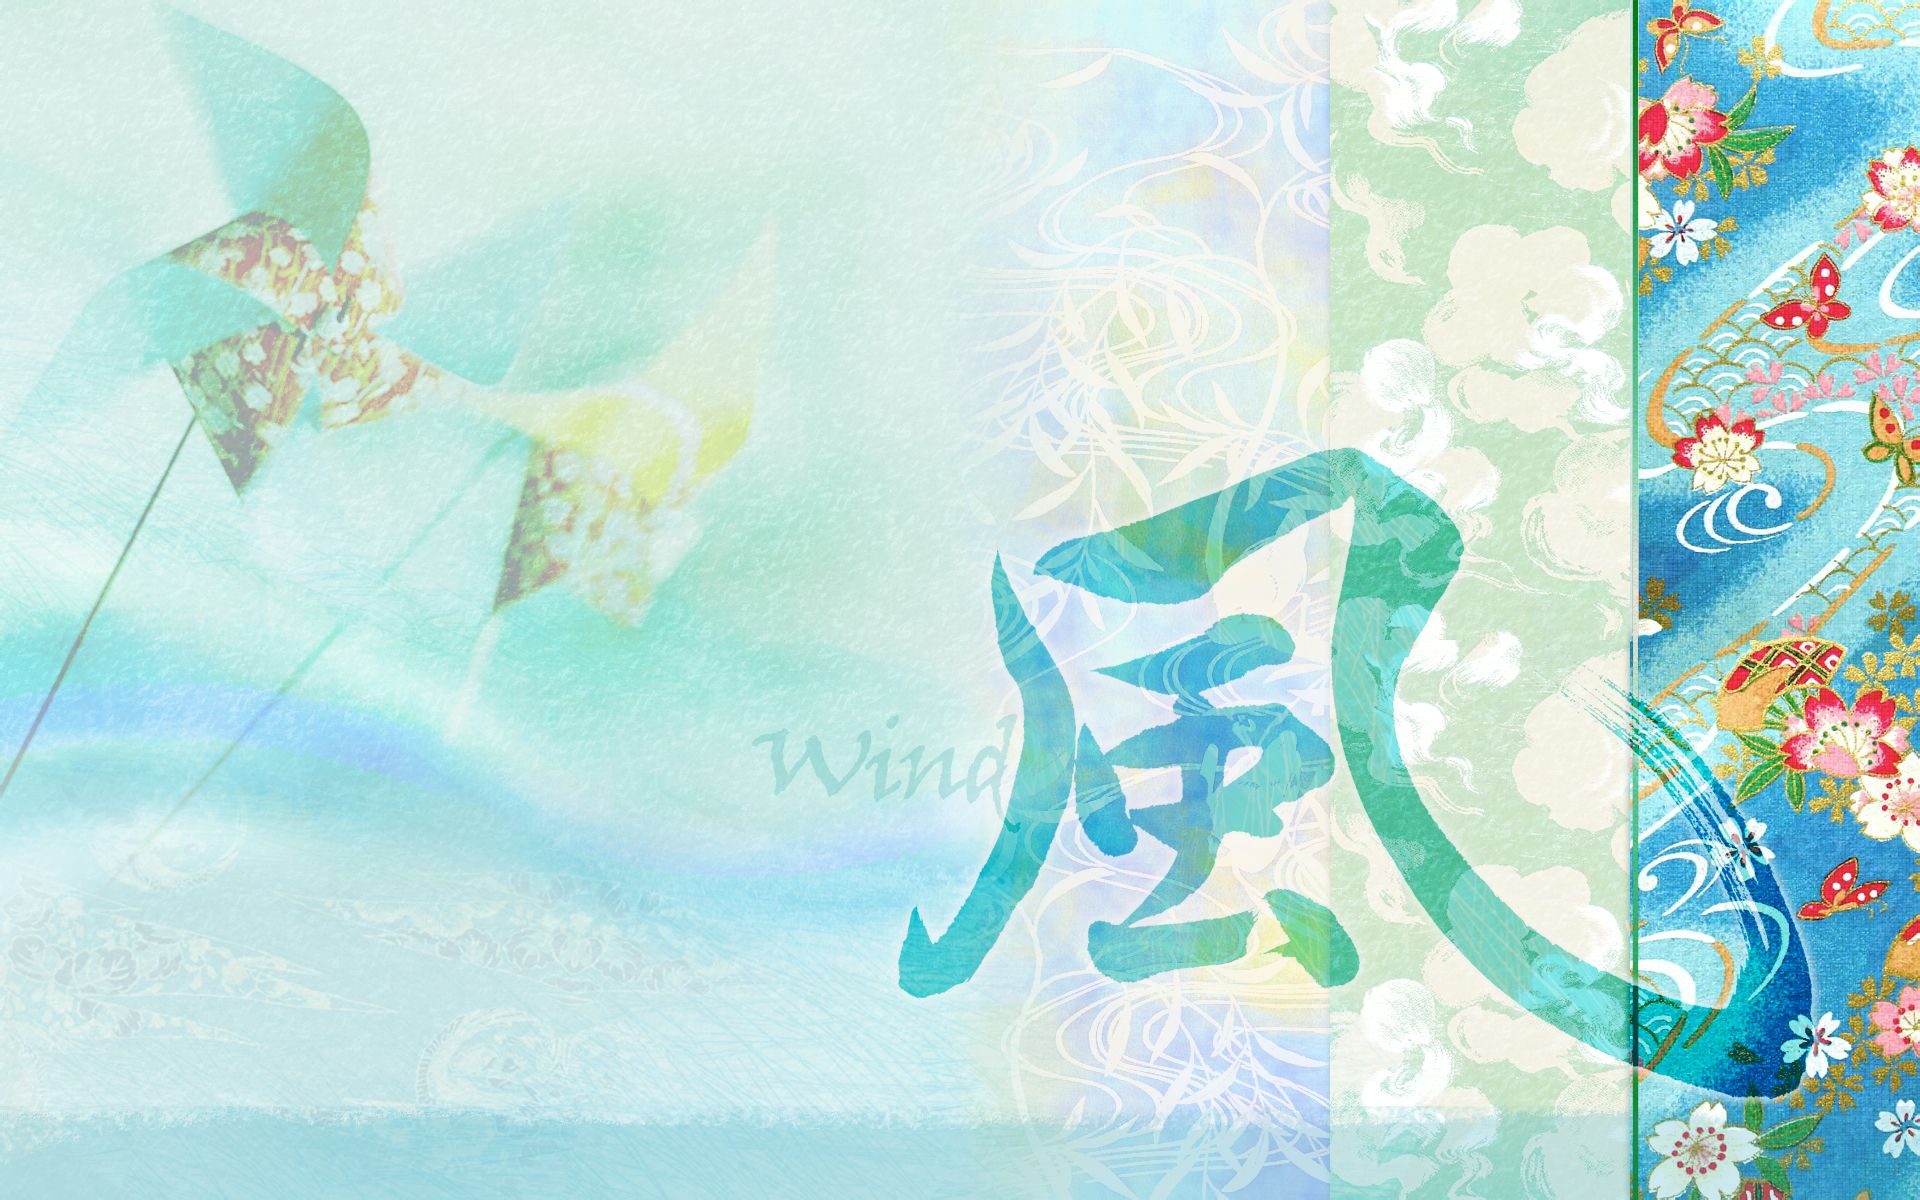 Japanese Water Painting Style Wallpaper